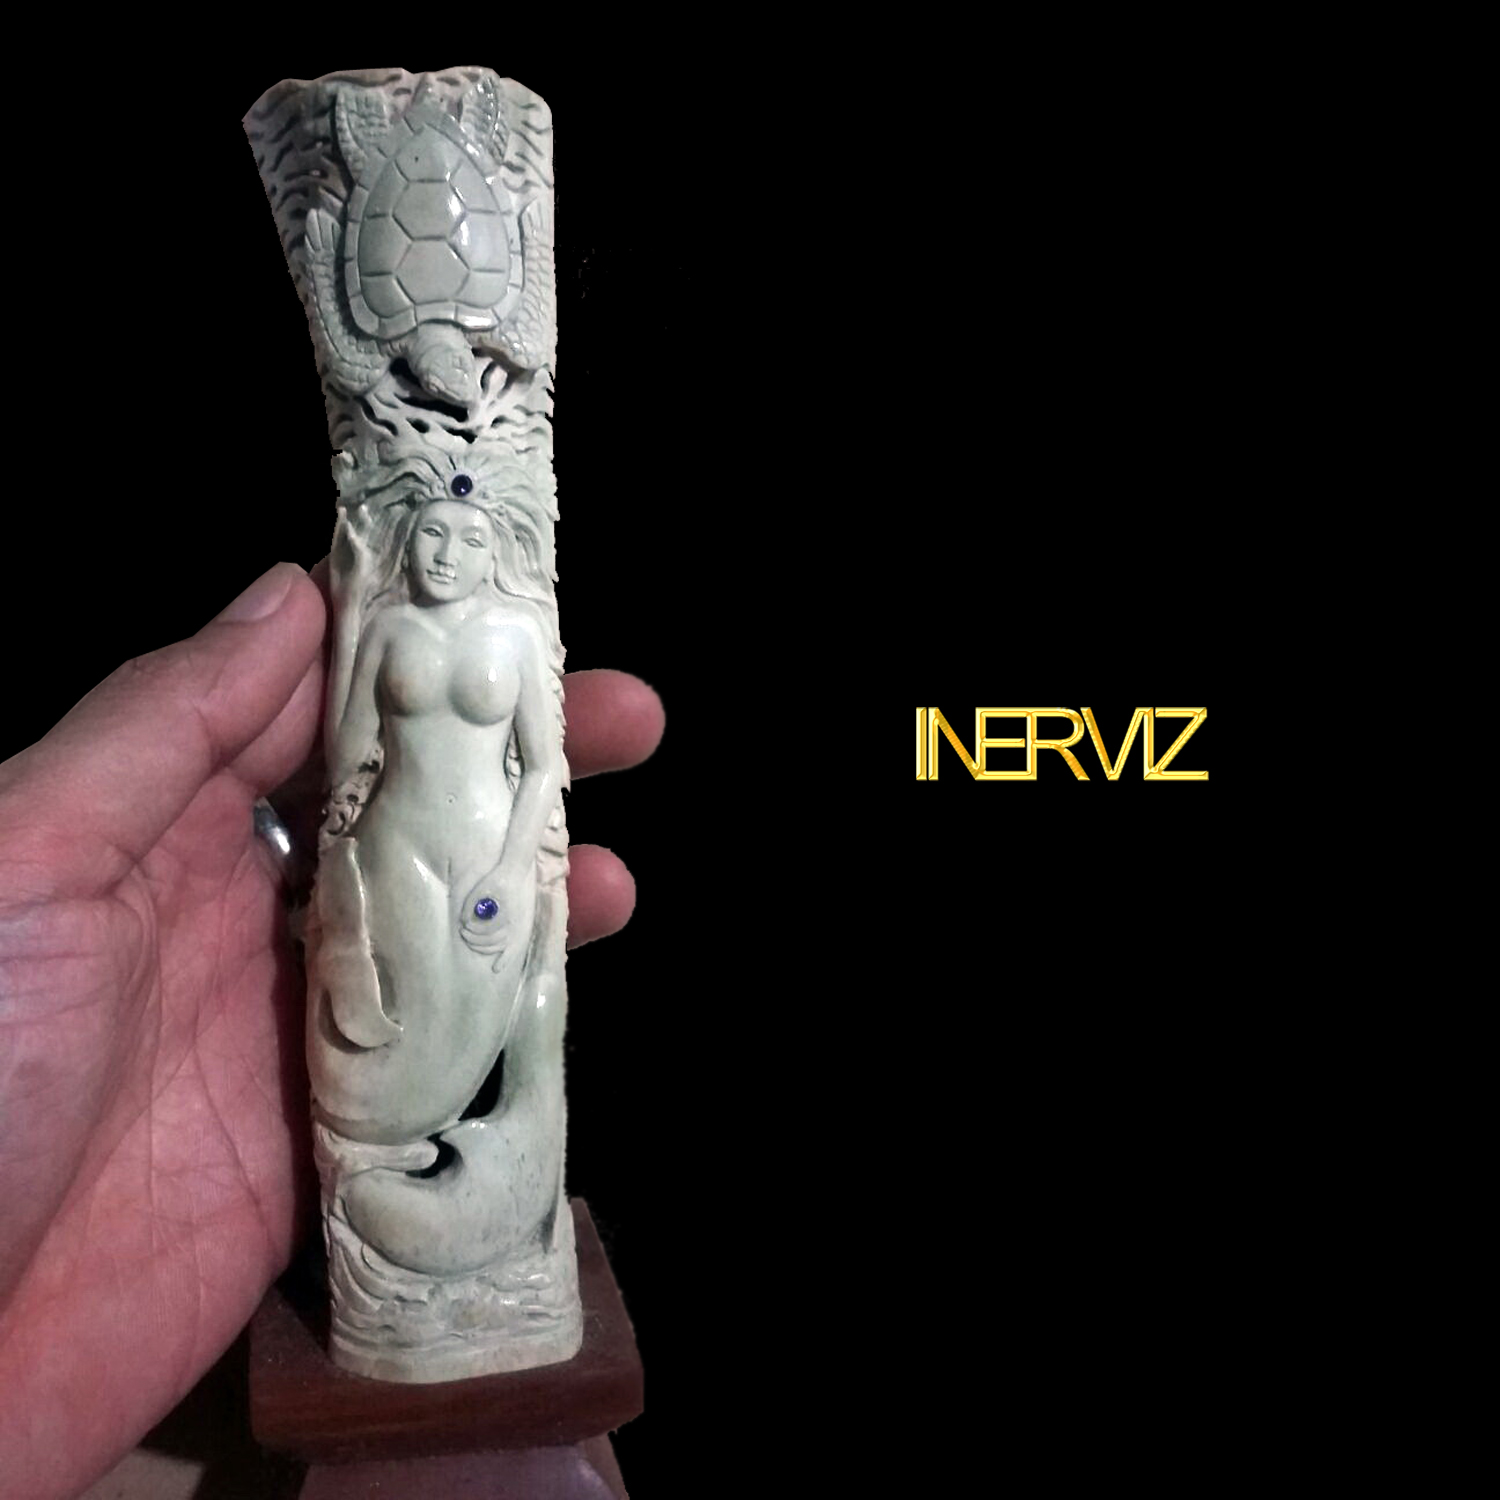 Carving Of Bones Carved Bone Mermaid Statue And Pendant Mix Design Atau Ukiran Tulang Motif Putri Duyung Patung Dan Liontin